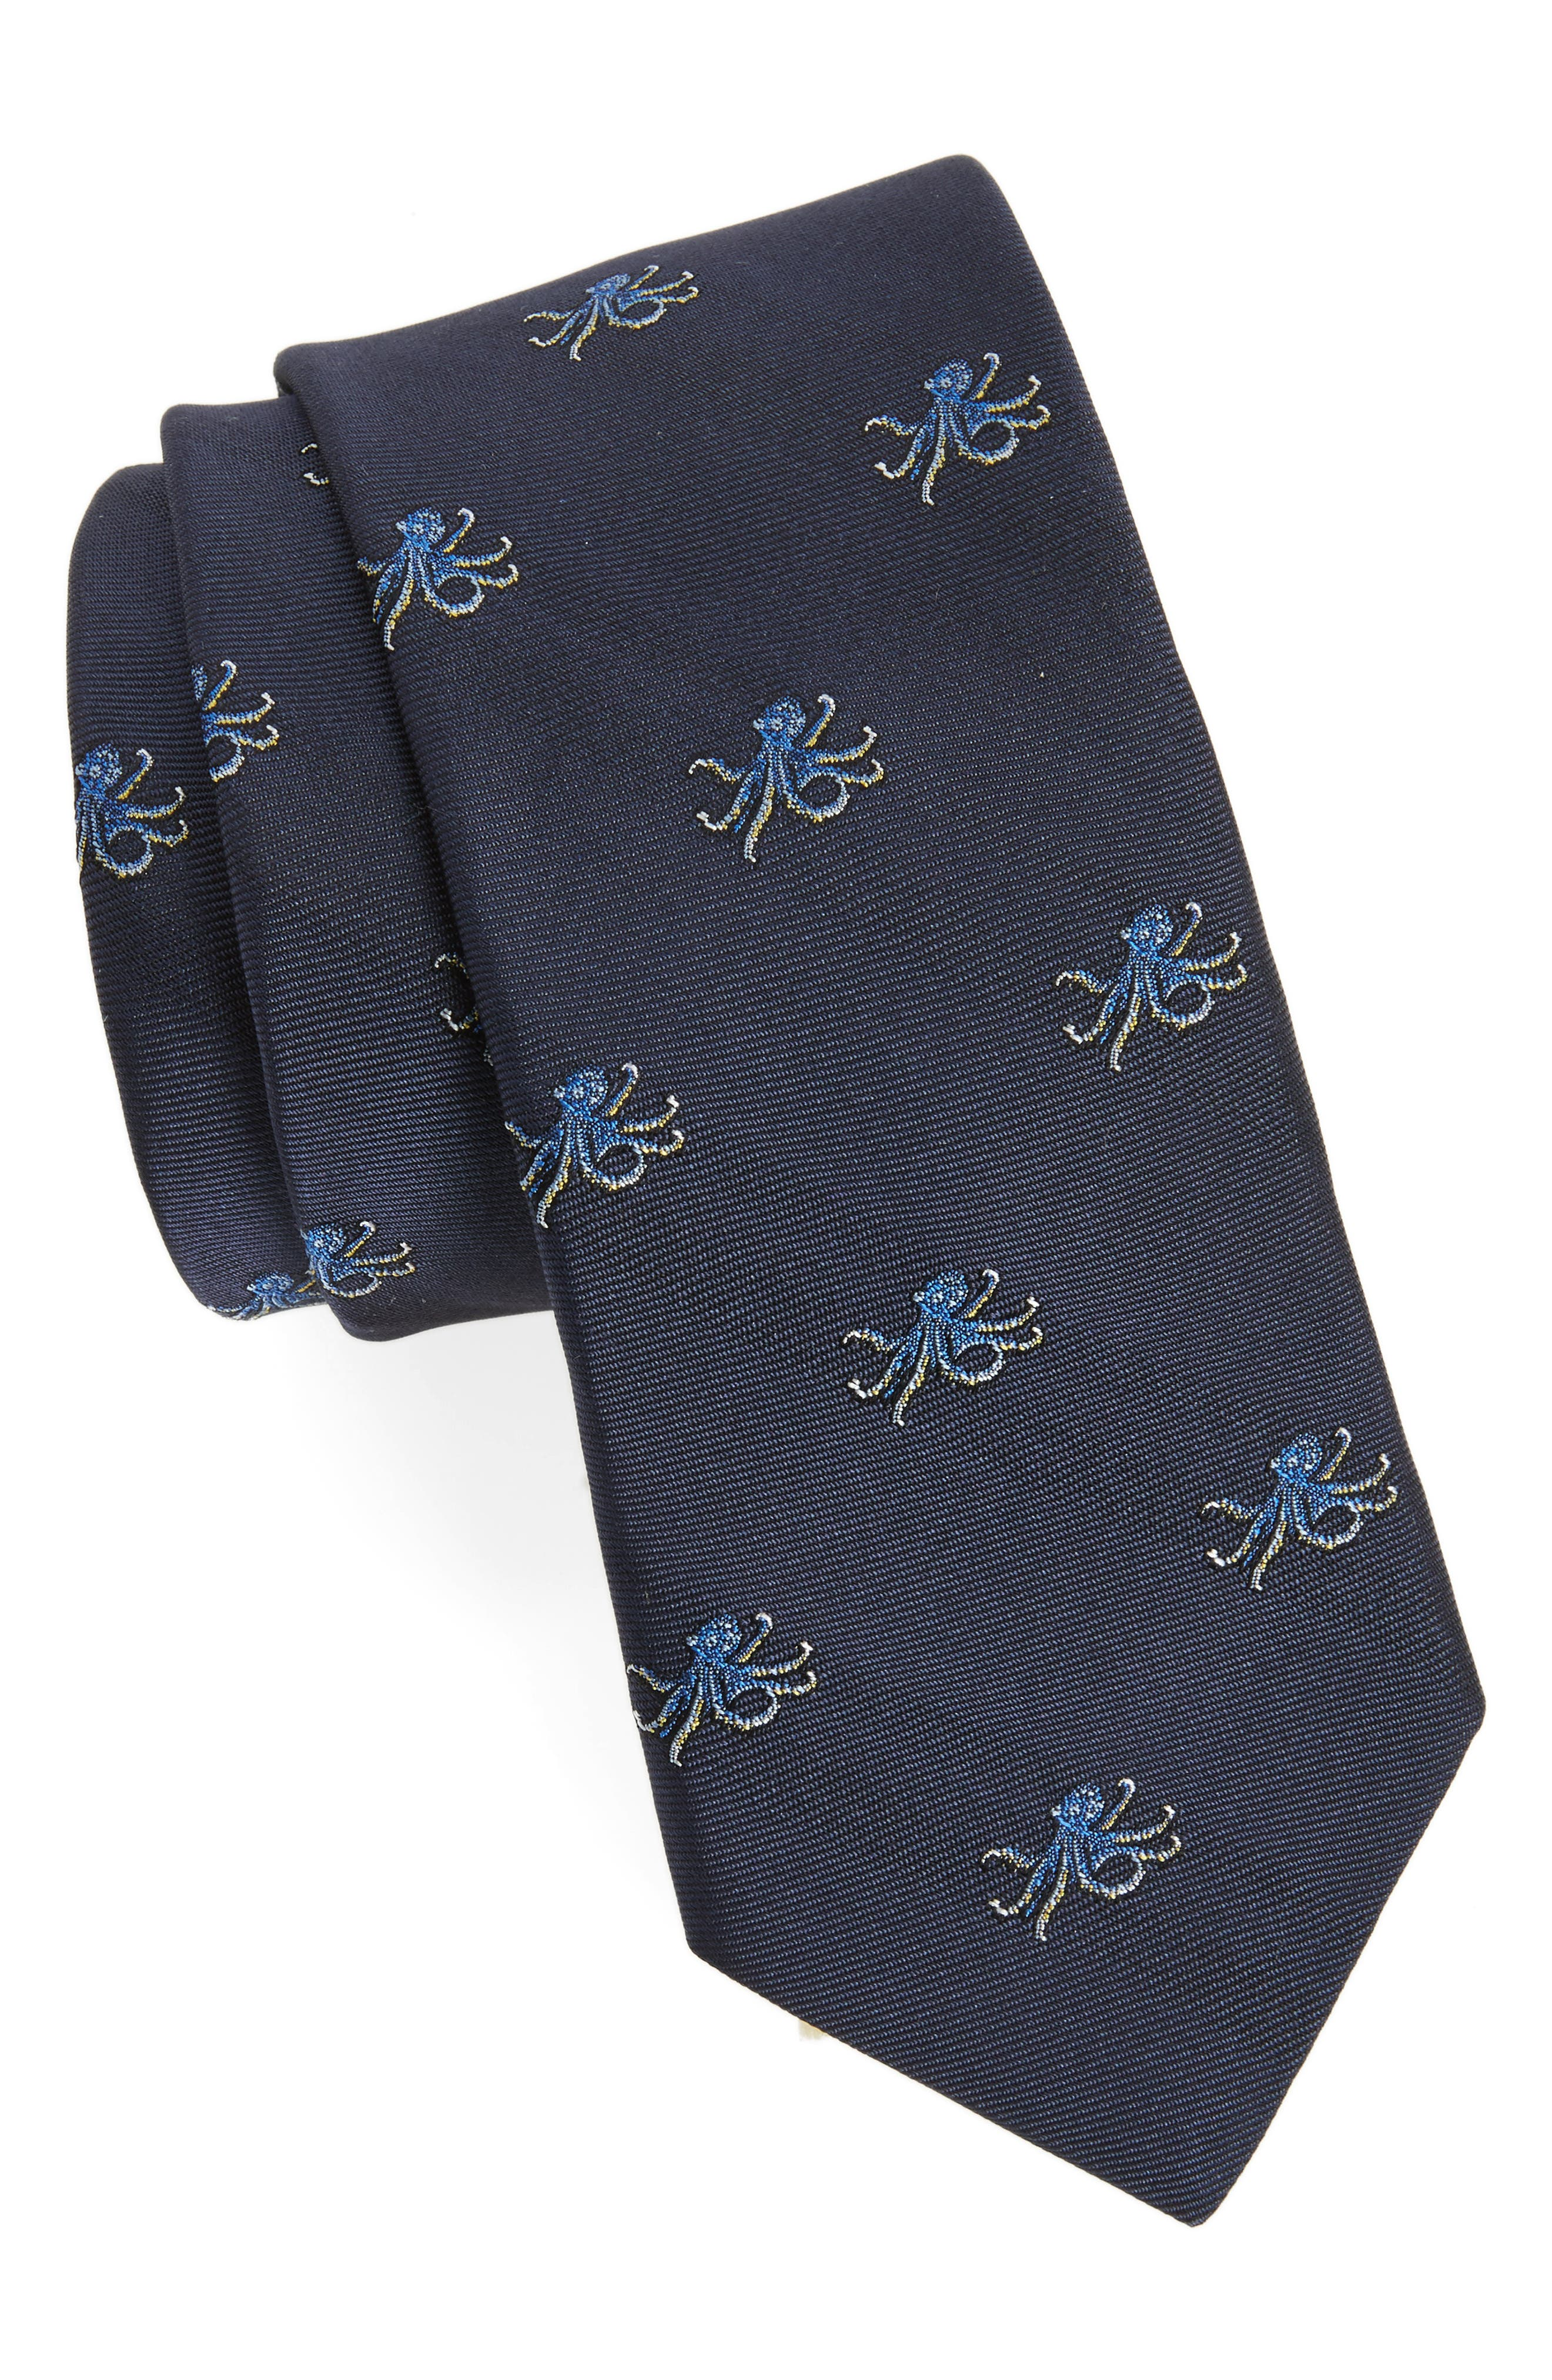 Octopus Silk Tie,                         Main,                         color, Navy